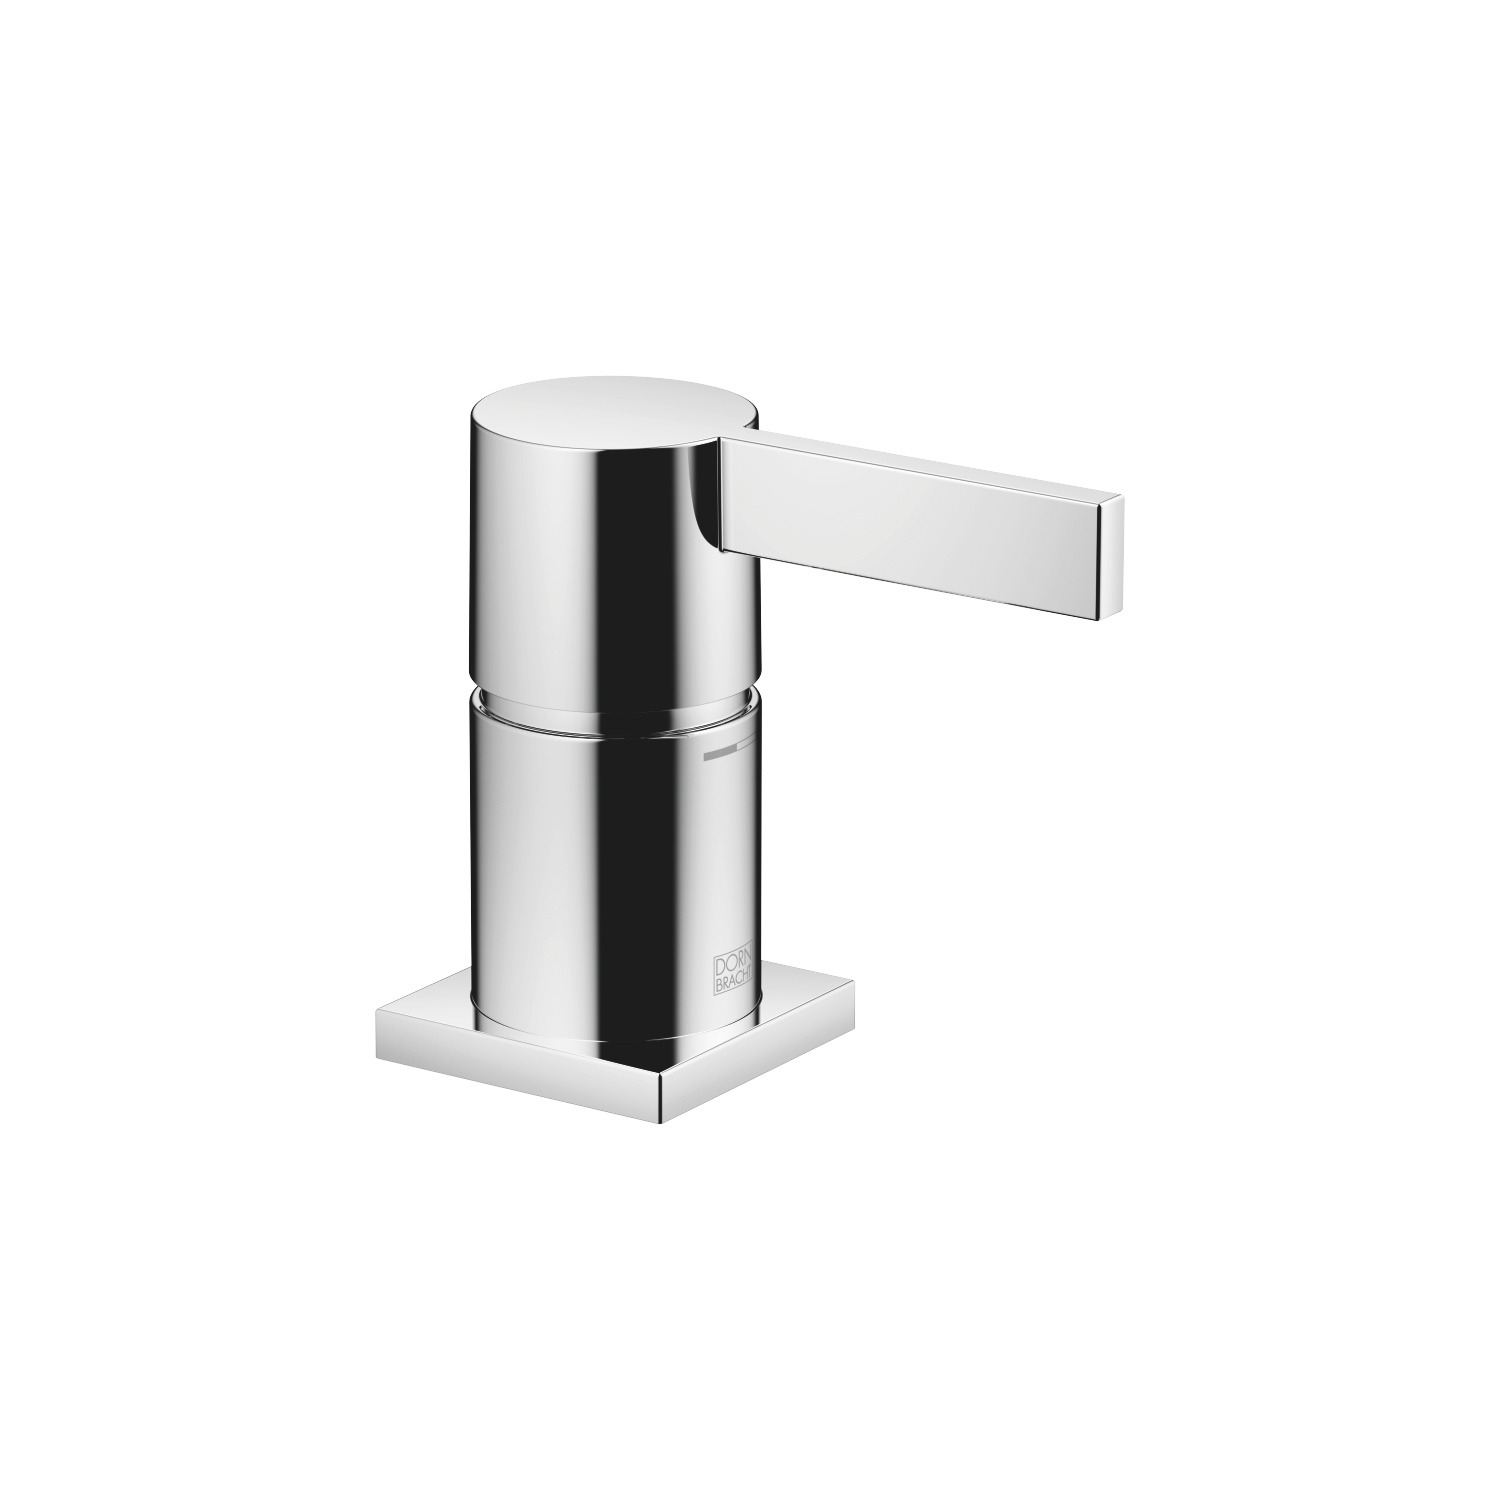 Single-lever tub mixer for deck-mounted tub installation - polished chrome